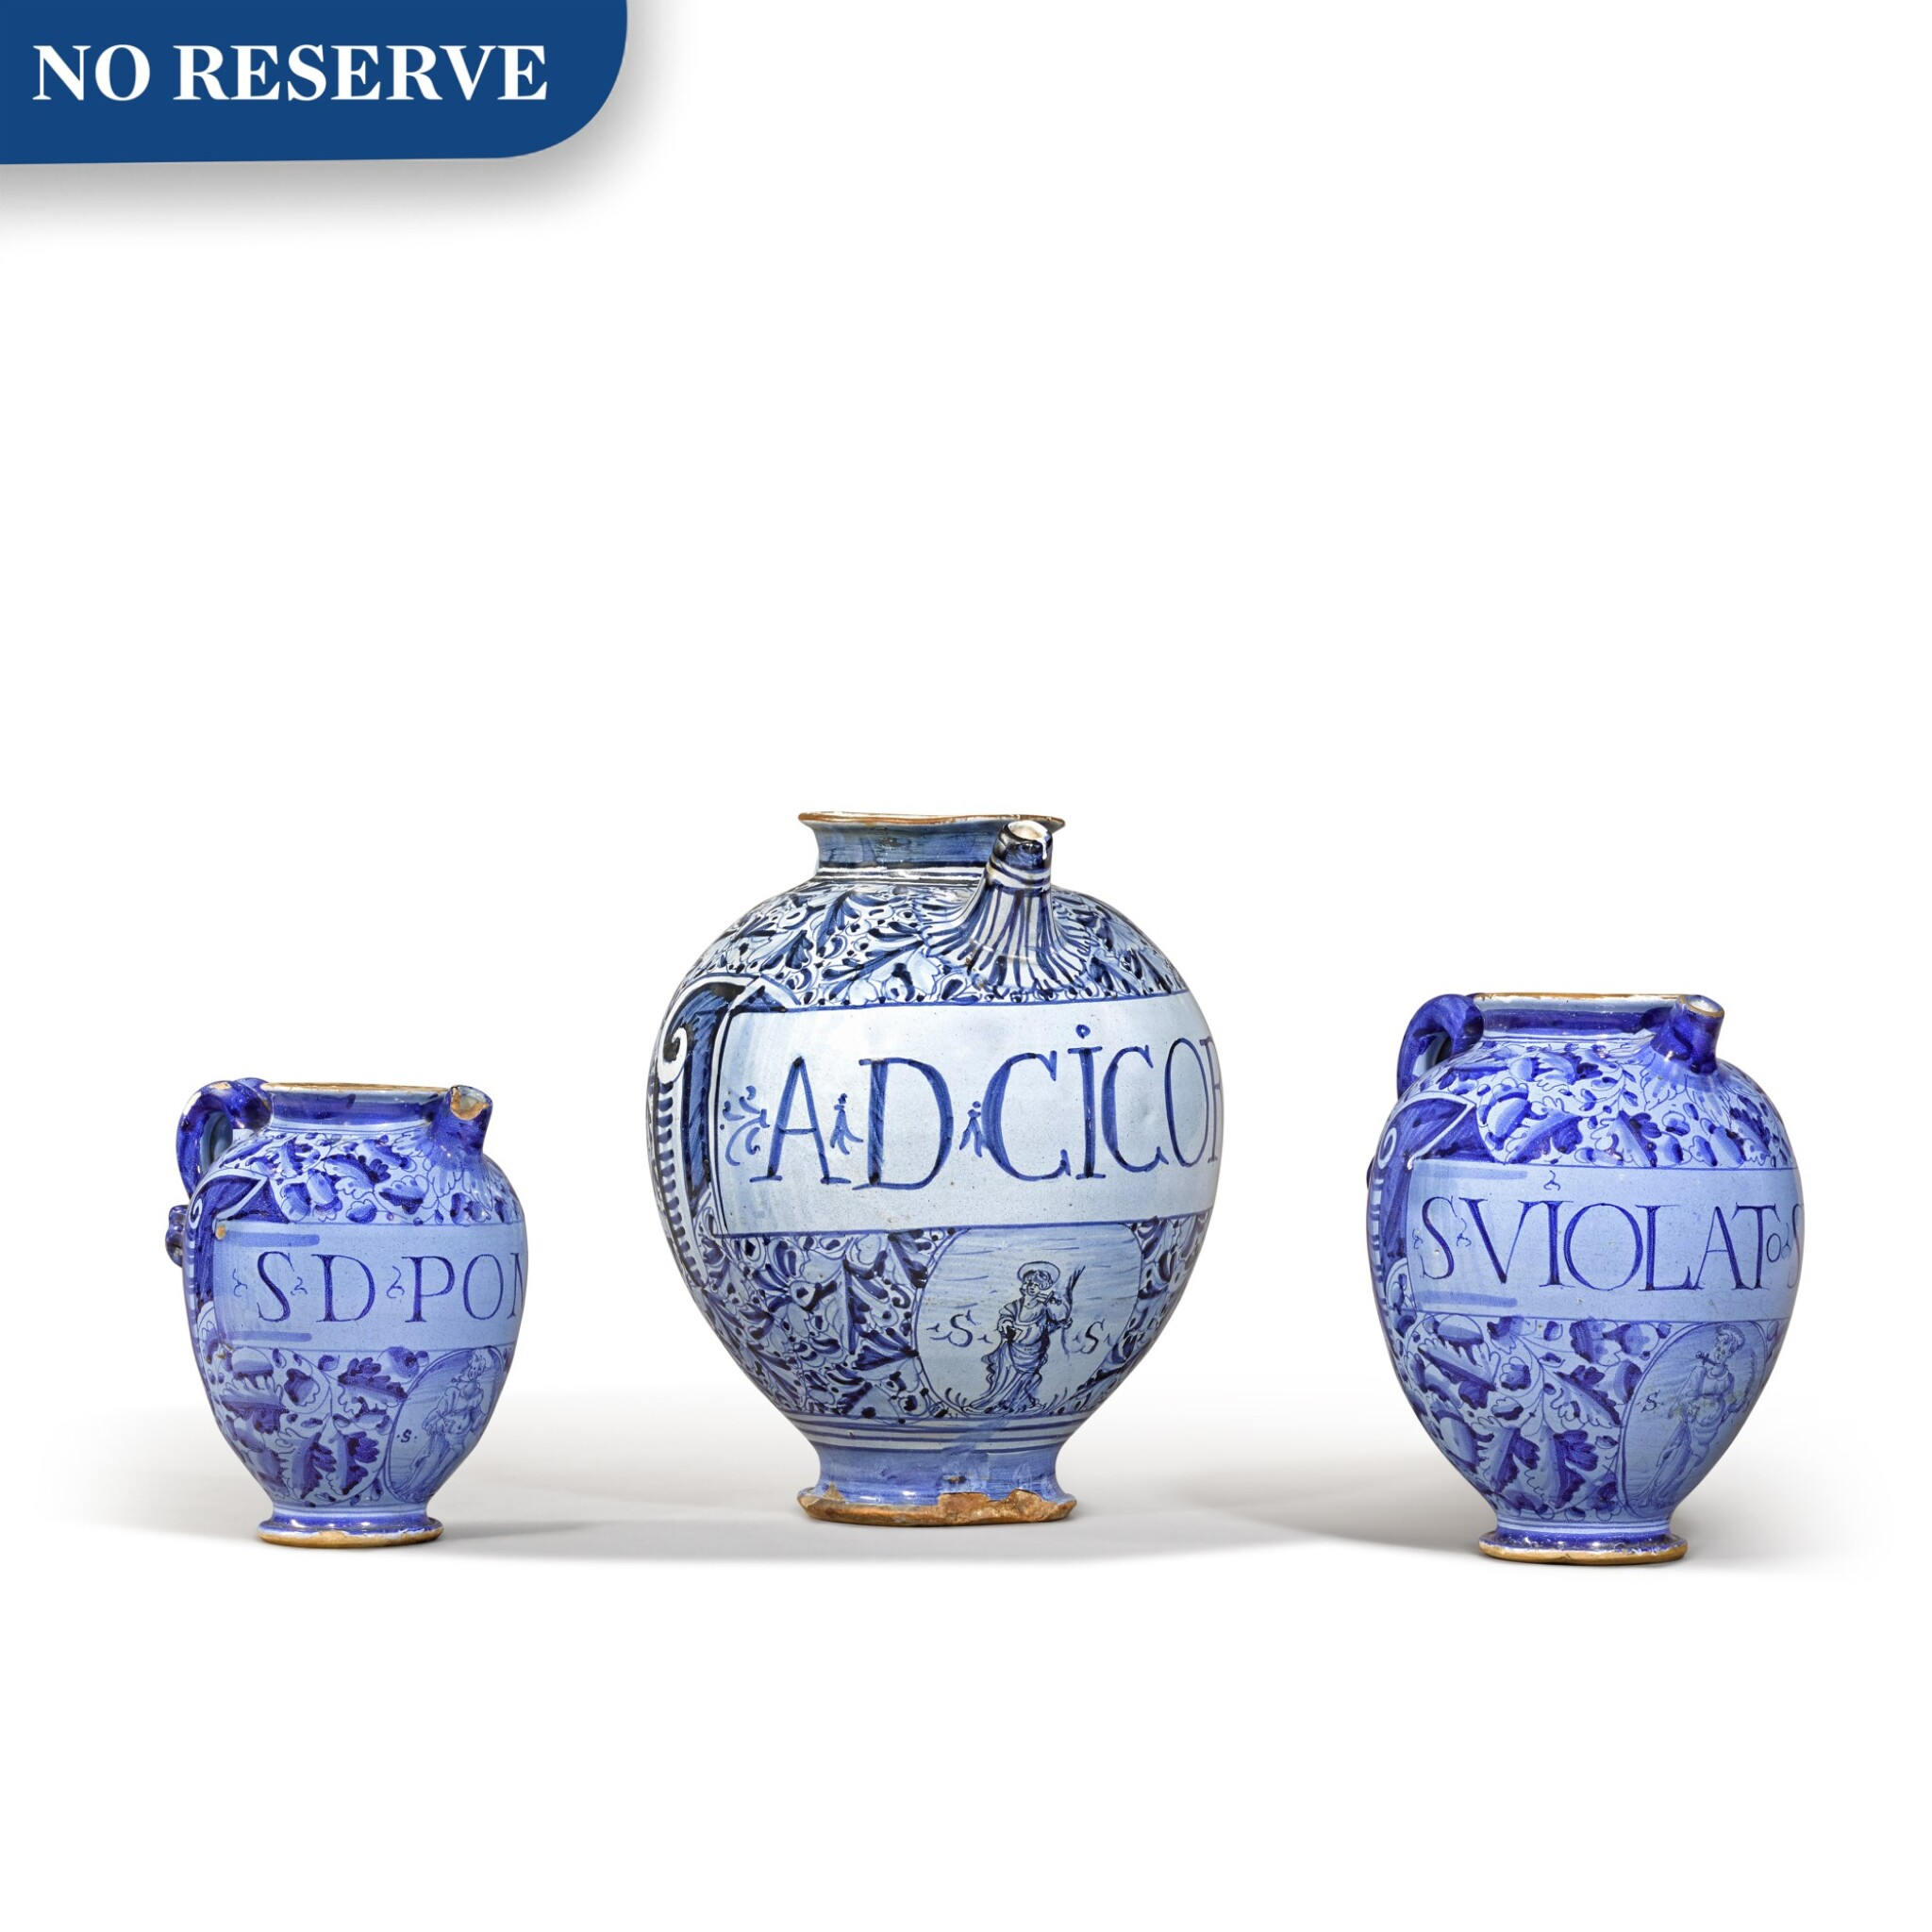 View 1 of Lot 6. Three Italian maiolica syrup jars, probably Montelupo or perhaps Venice, circa 1580 and circa 1620.